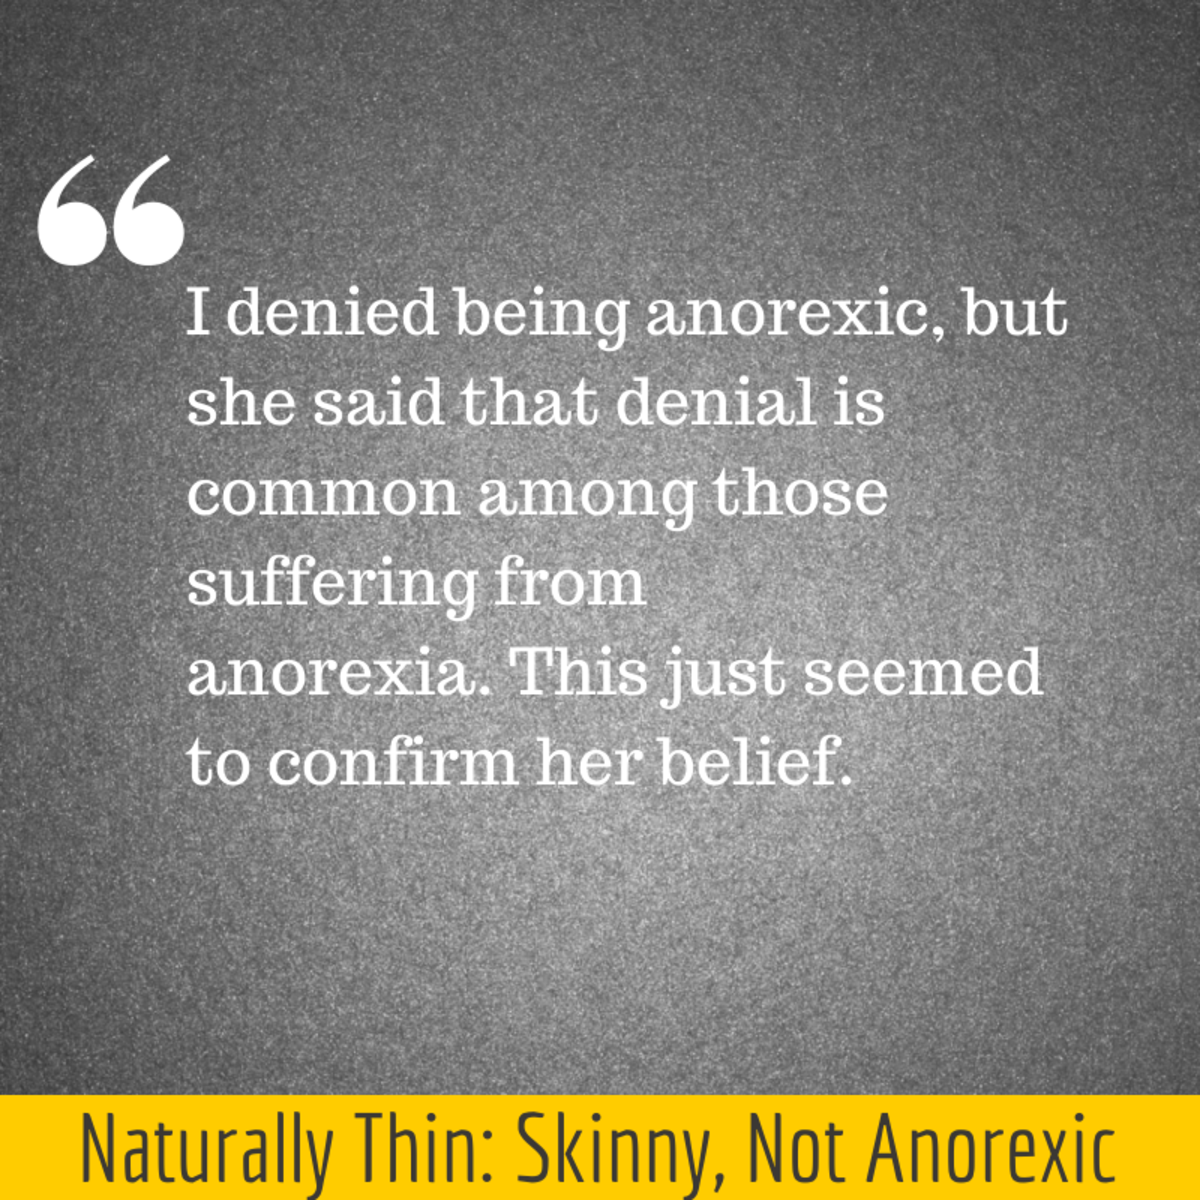 Naturally Thin: Skinny, Not Anorexic